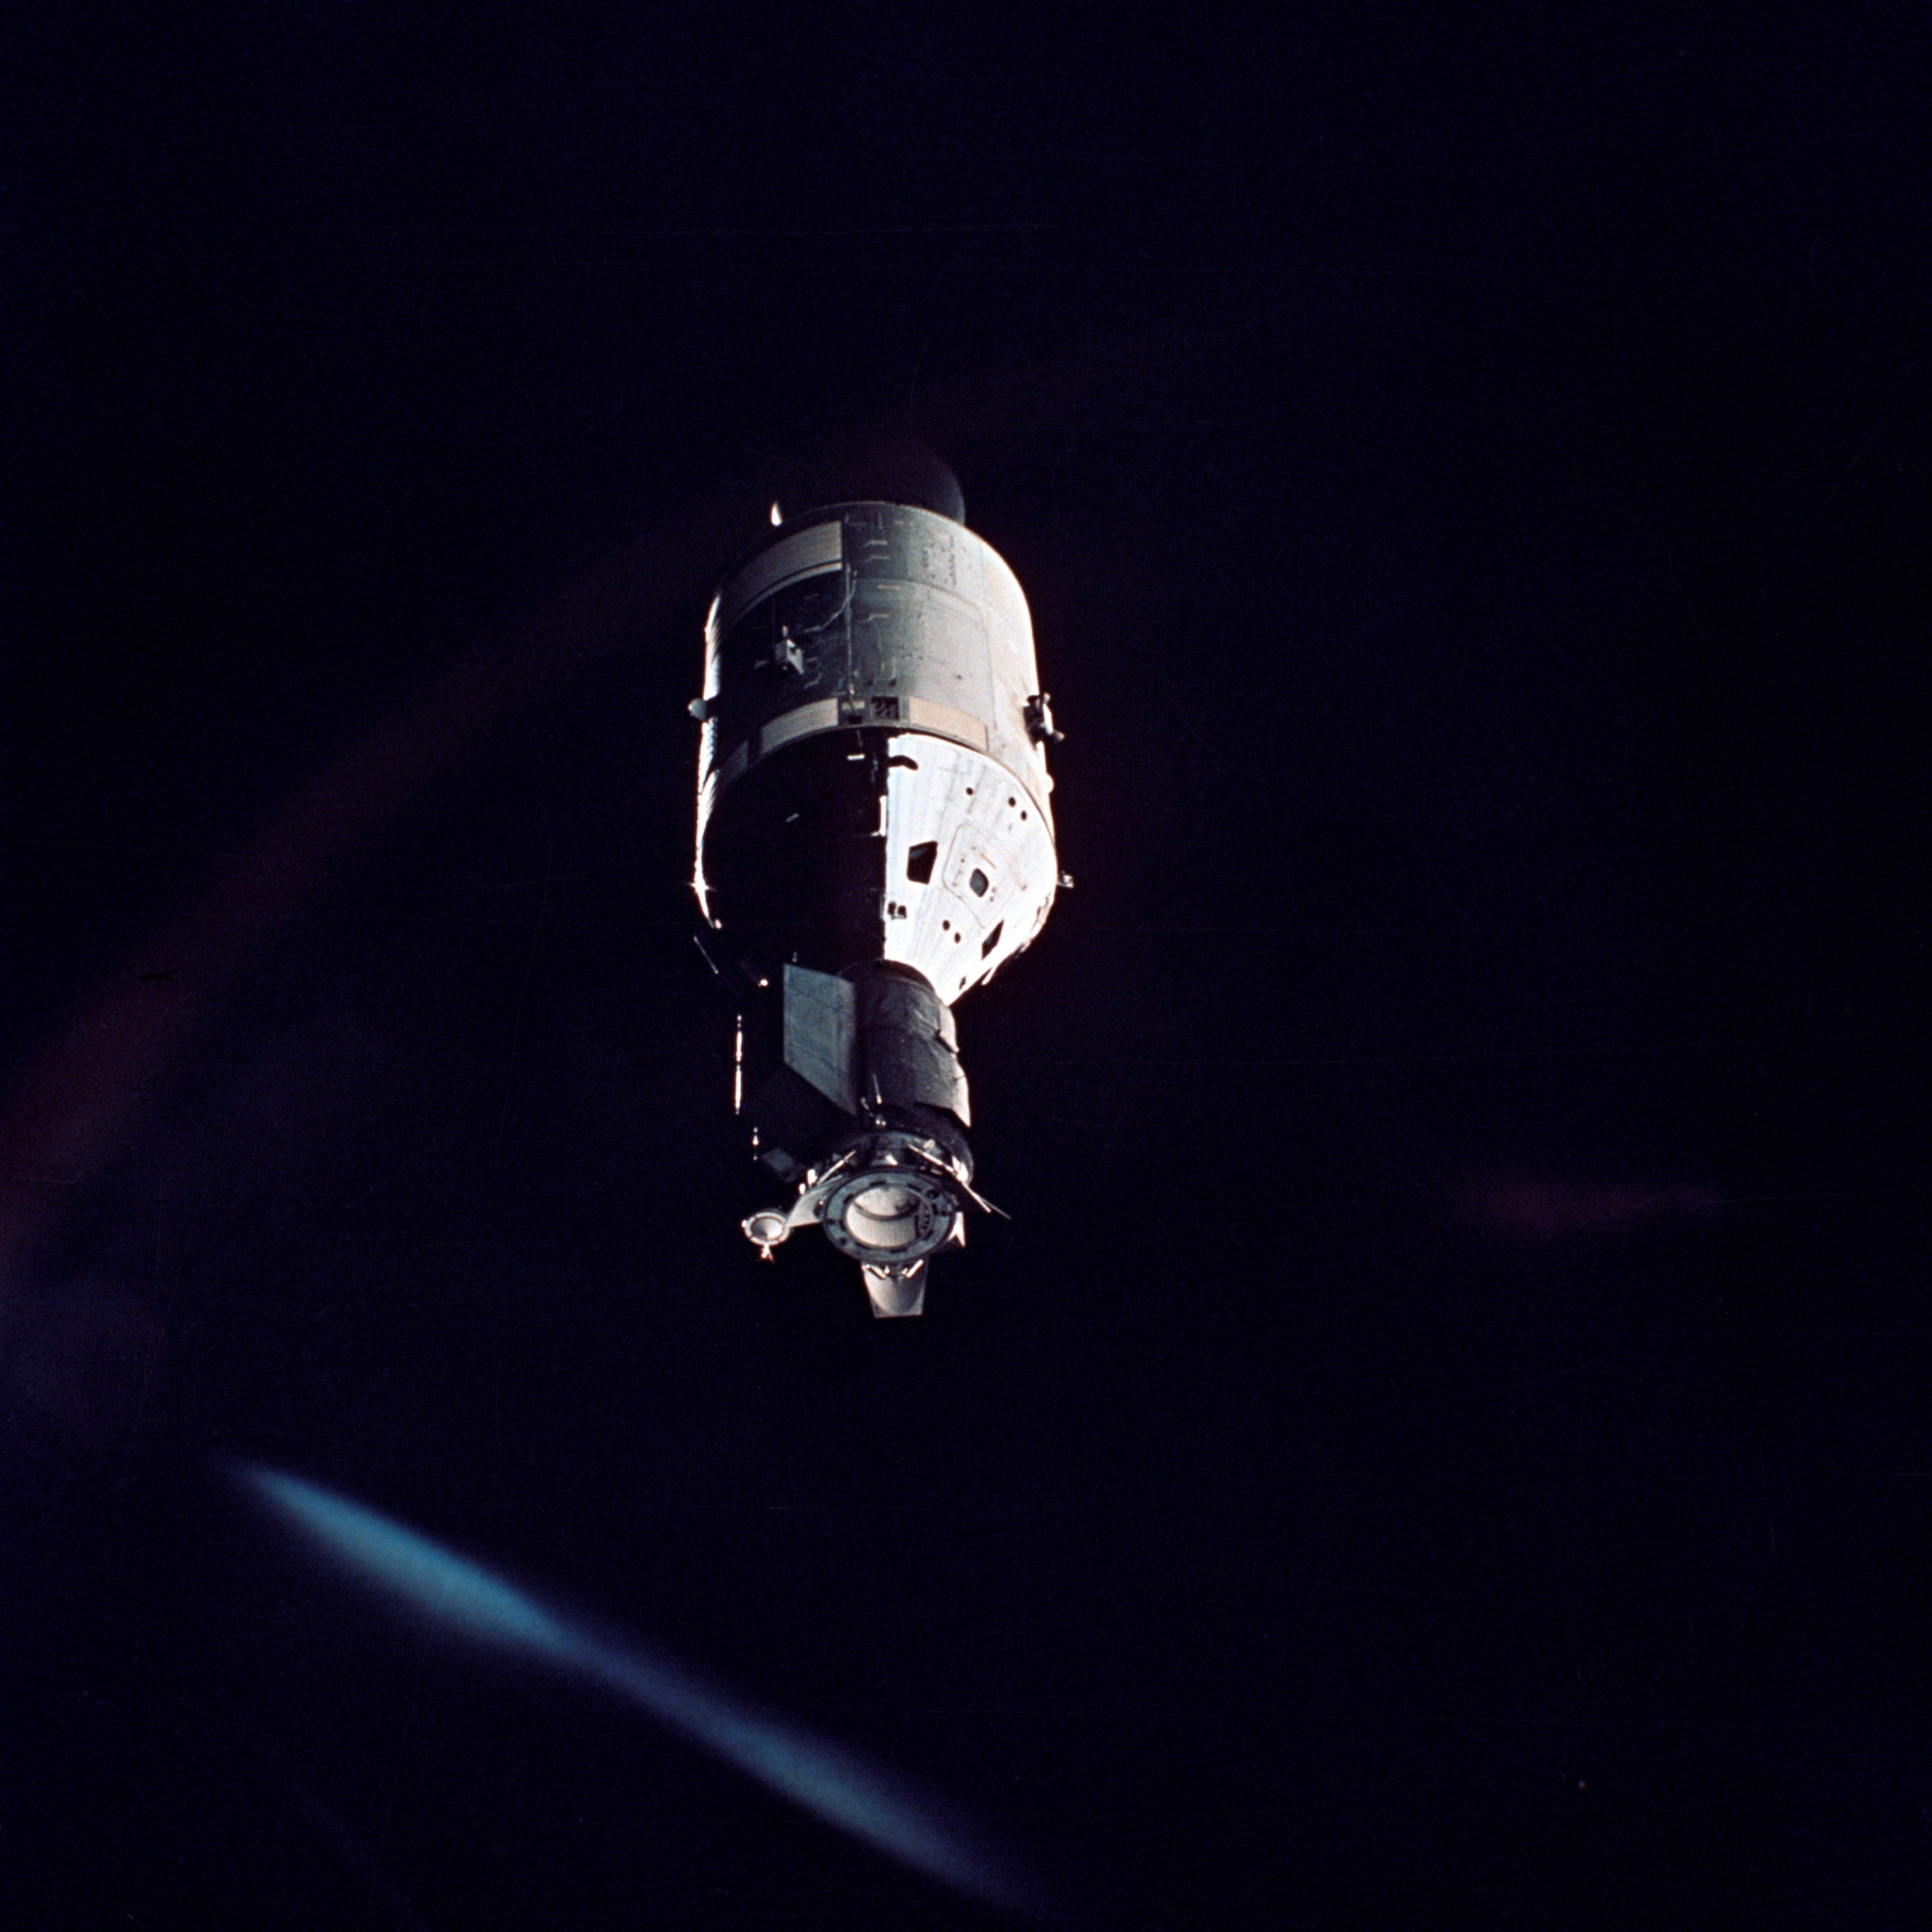 The American Apollo spacecraft as seen in Earth orbit from the Soviet Soyuz 19 spacecraft during the joint U.S.-USSR Apollo Soyuz Test Project (ASTP) mission.